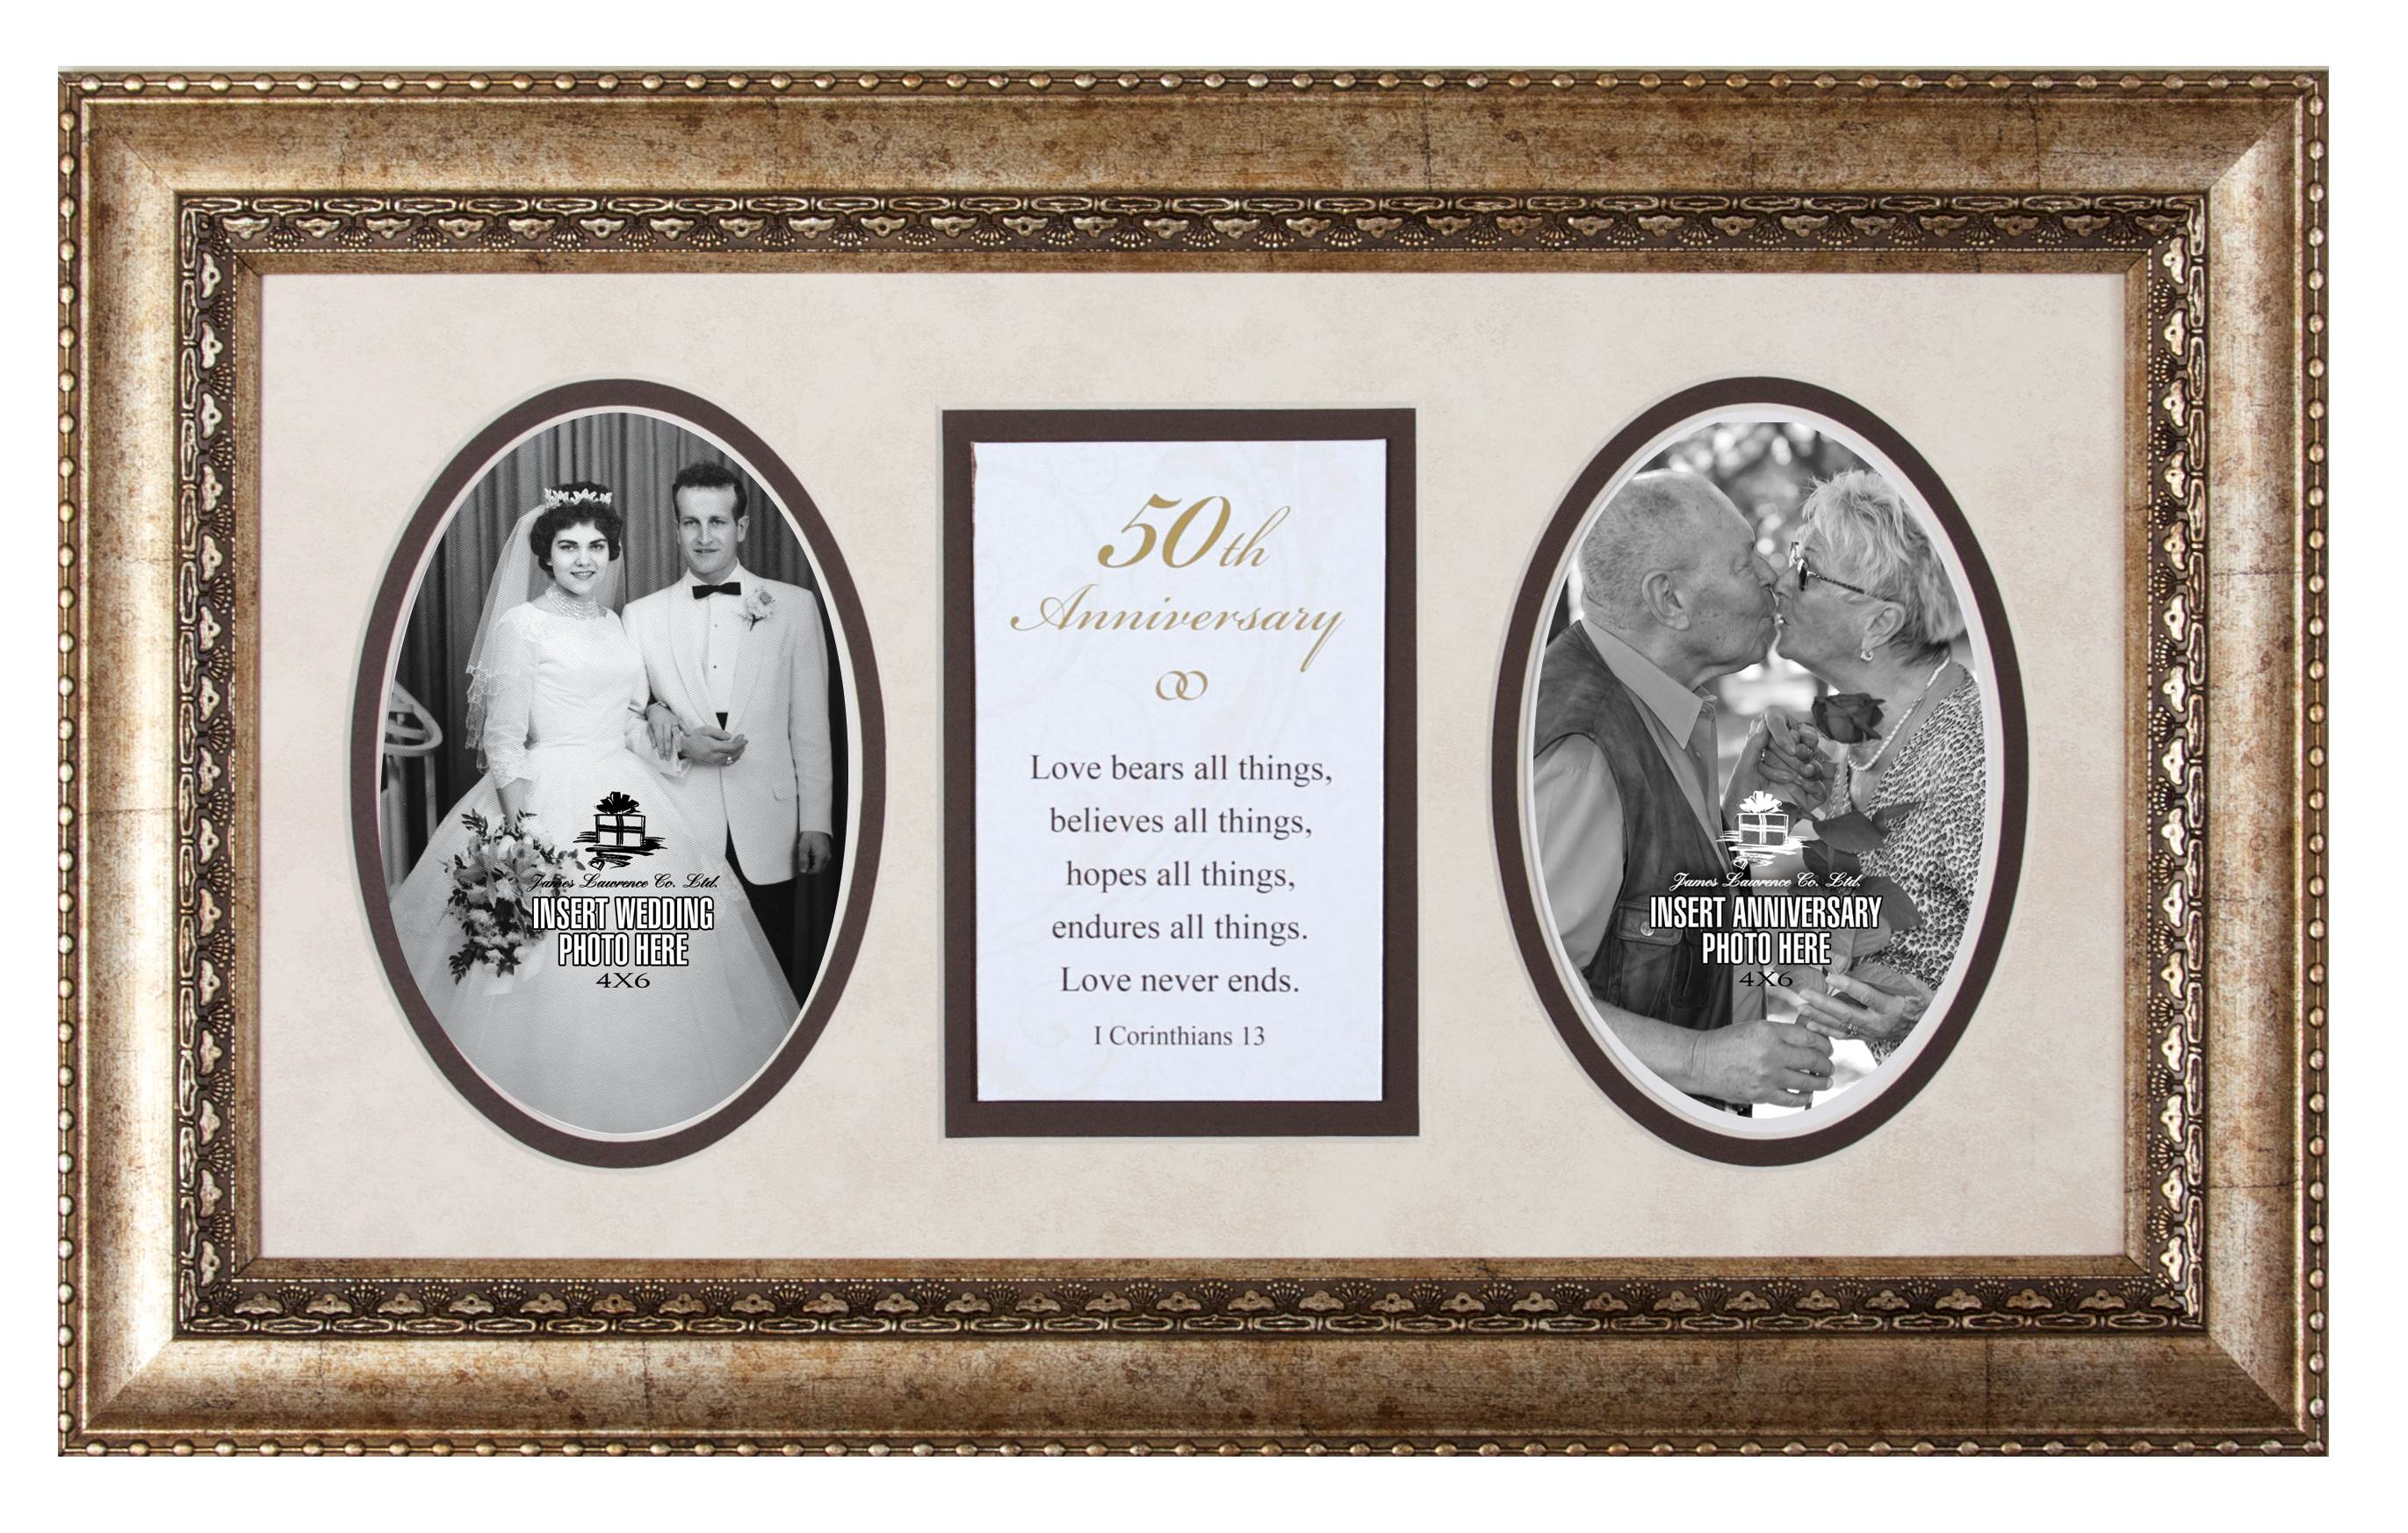 50th Anniversary Photo Frame with Verse